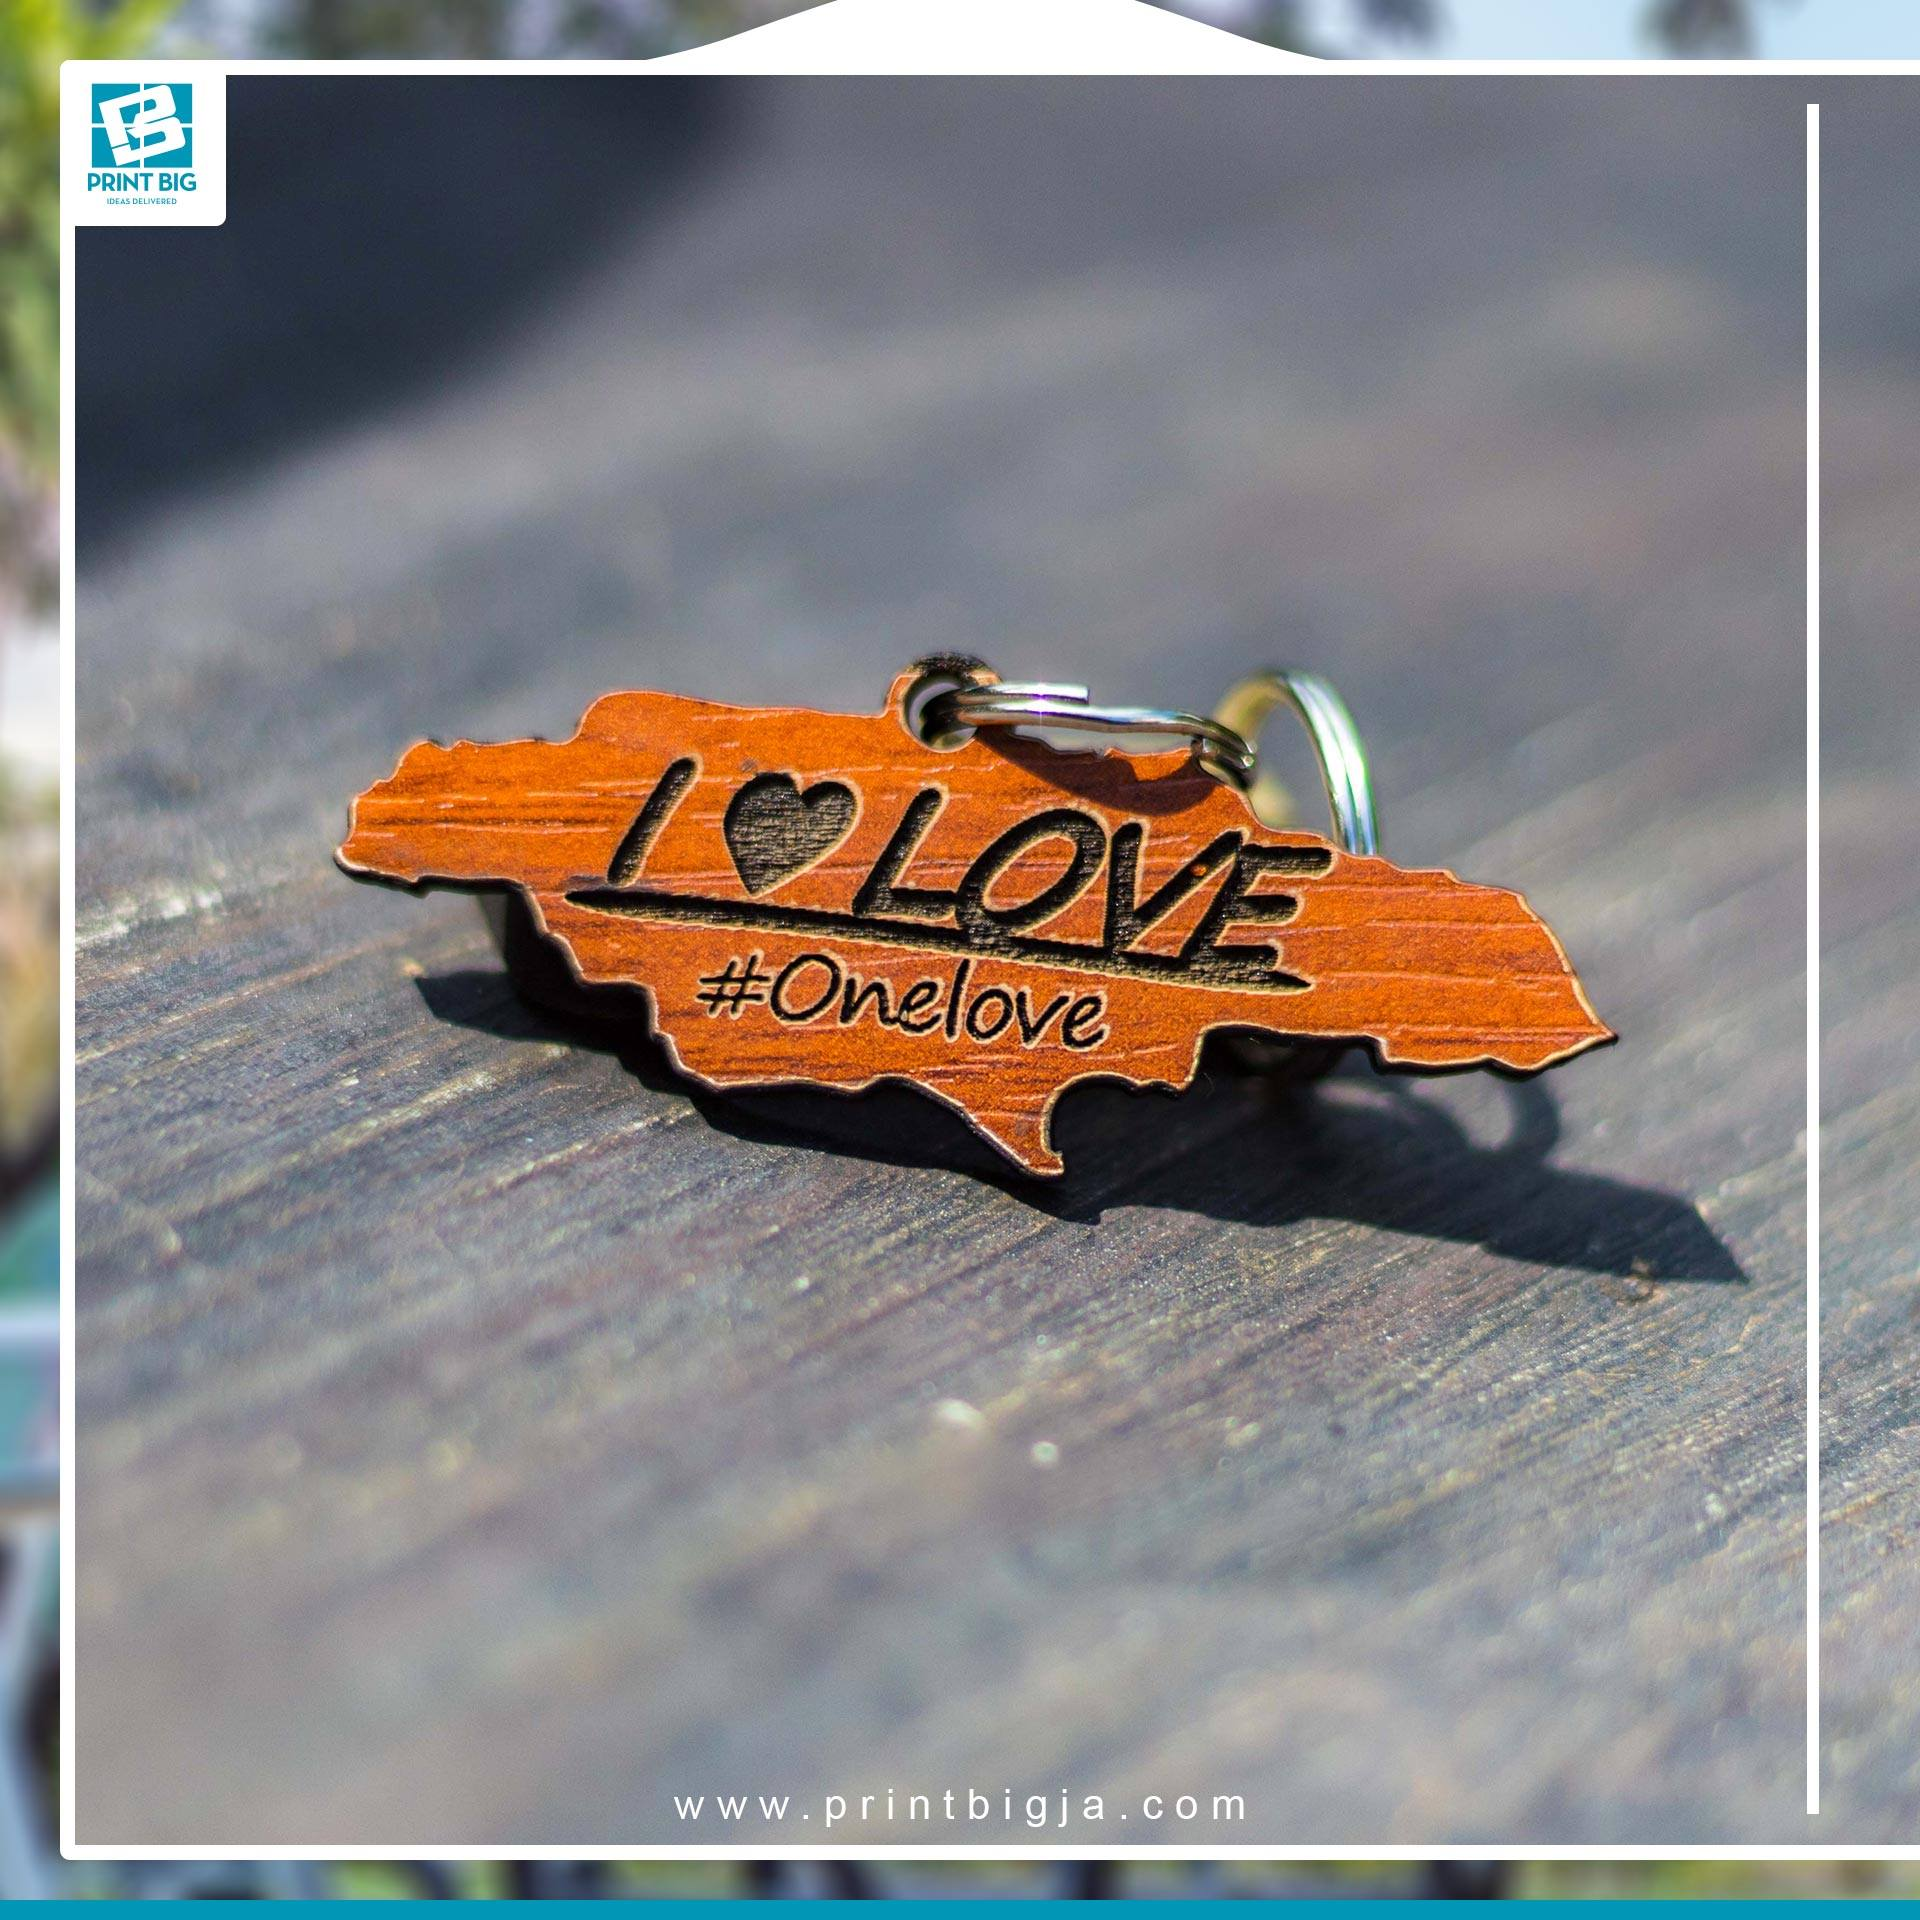 We039ll expertly laser engrave your selection